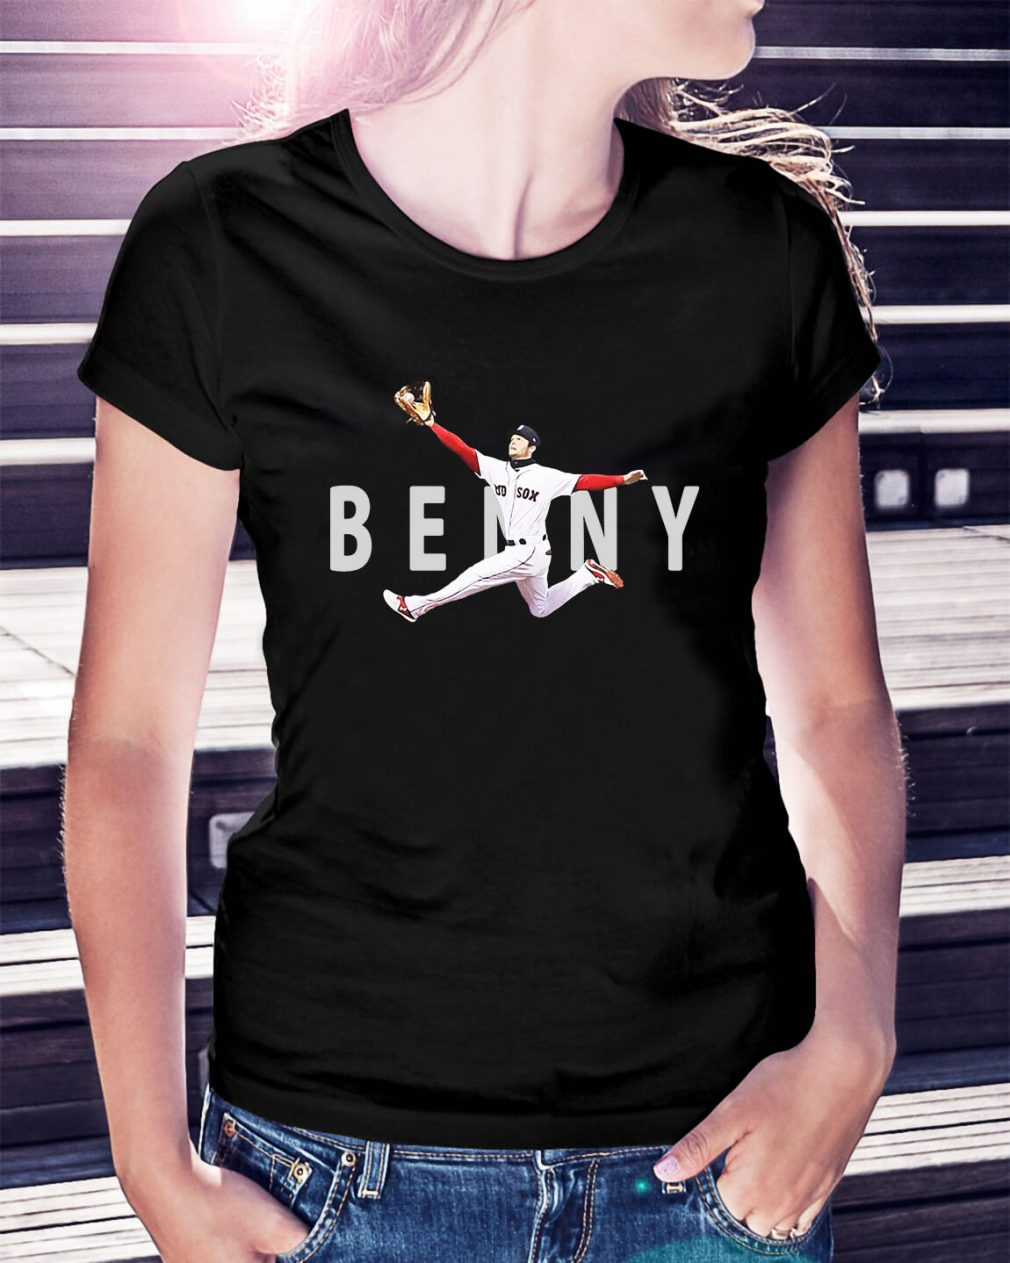 Air Benny Boston baseball G200 Gildan Ladies Tee